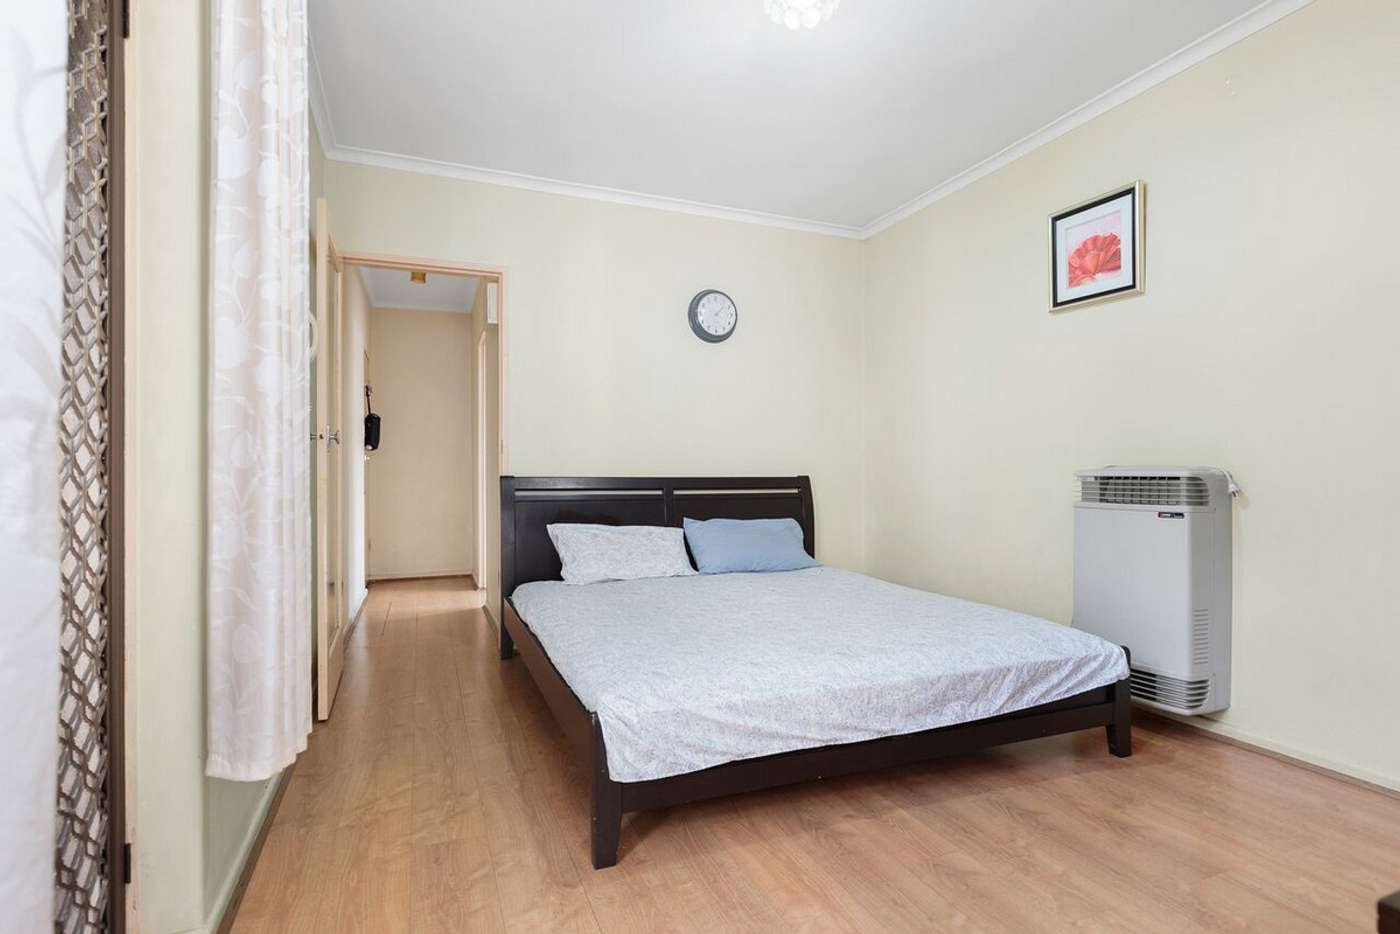 Fifth view of Homely unit listing, 5/176 Murrumbeena Road, Murrumbeena VIC 3163